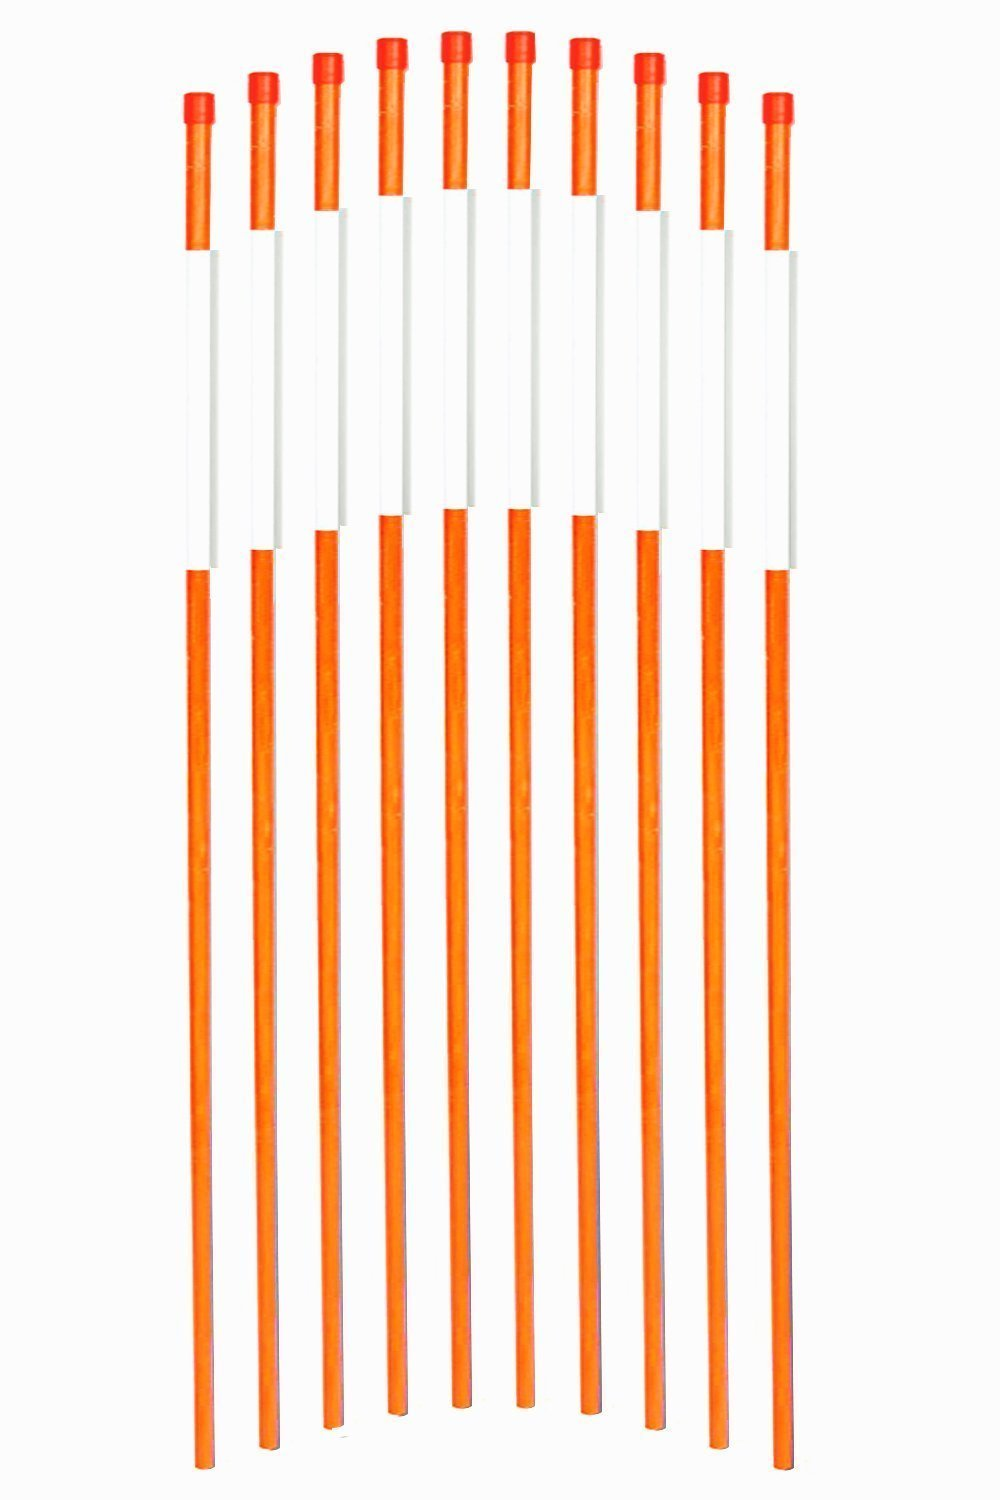 FiberMarker 60-Inch Reflective Driveway Markers Driveway Poles for Easy Visibility at Night 5/16 Inch Diameter Orange, 20 Pack